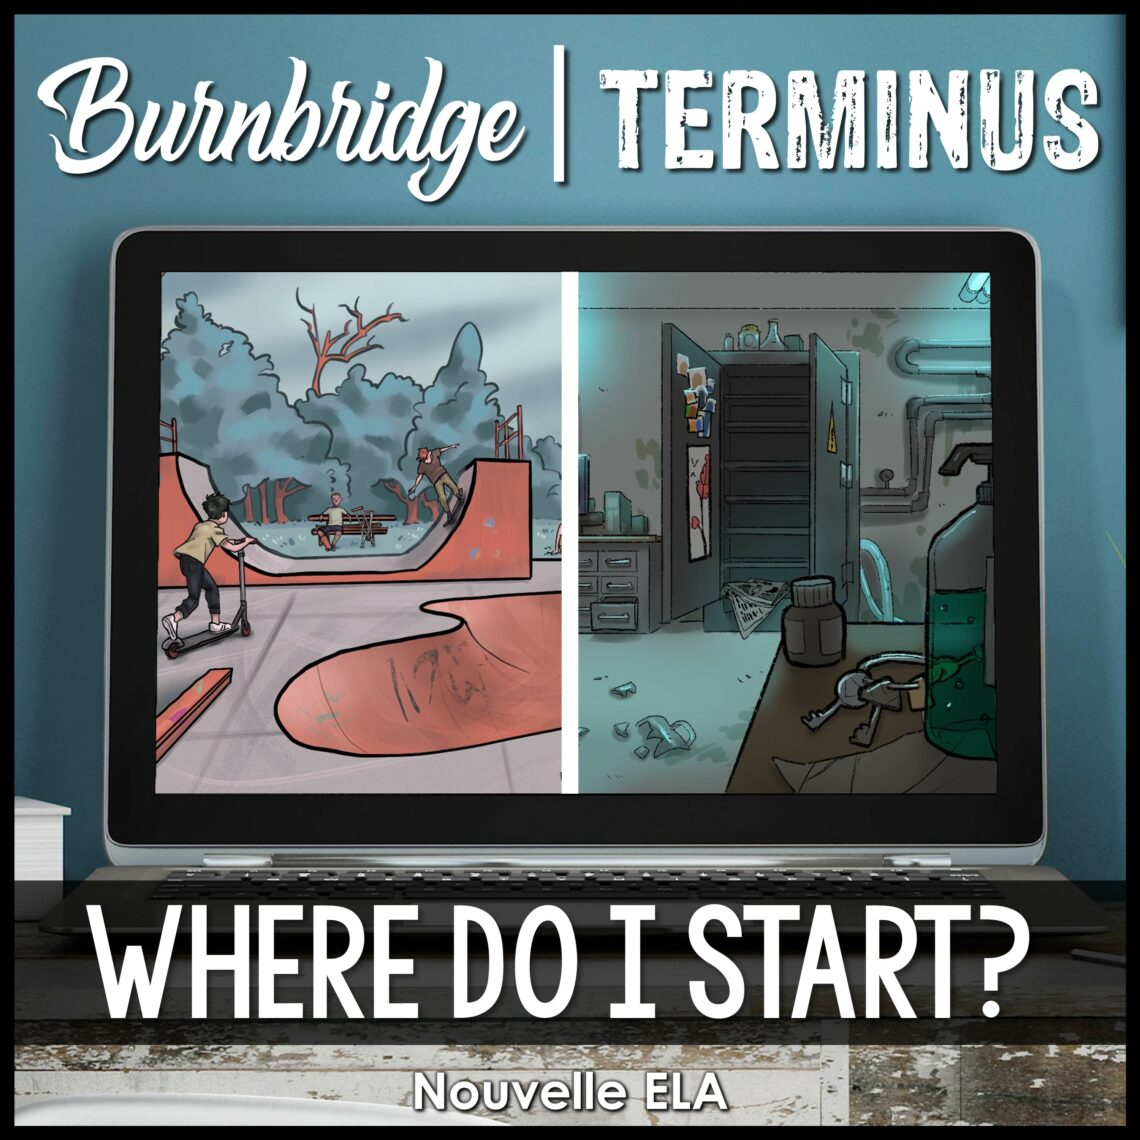 An open laptop, on the screen there is an illustrated image of a skatepark on the left side and an abandoned lab on the right side. The text at the top reads Burnbridge | Terminus and at the bottom it says Where do I start?